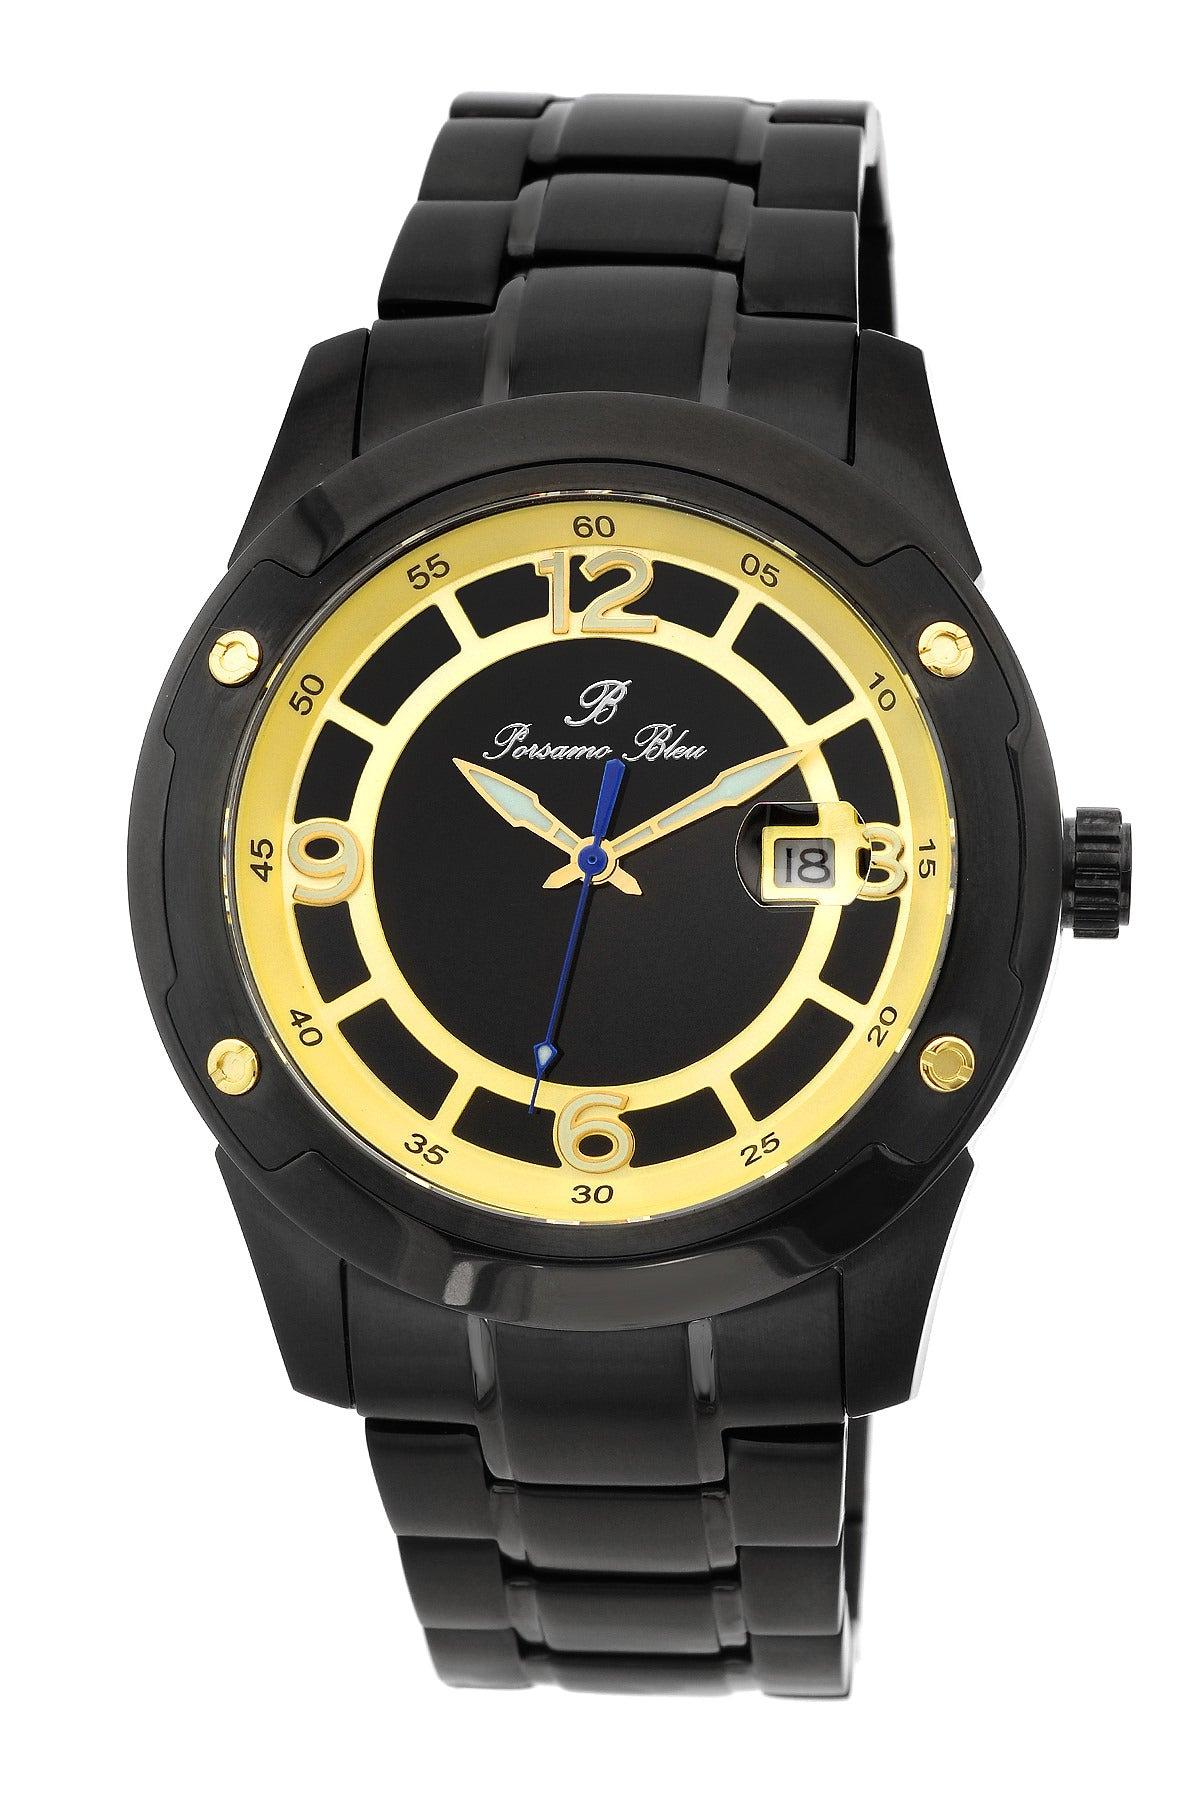 Porsamo Bleu Tokyo luxury Automatic men's stainless steel watch, gold, black 174ATOS